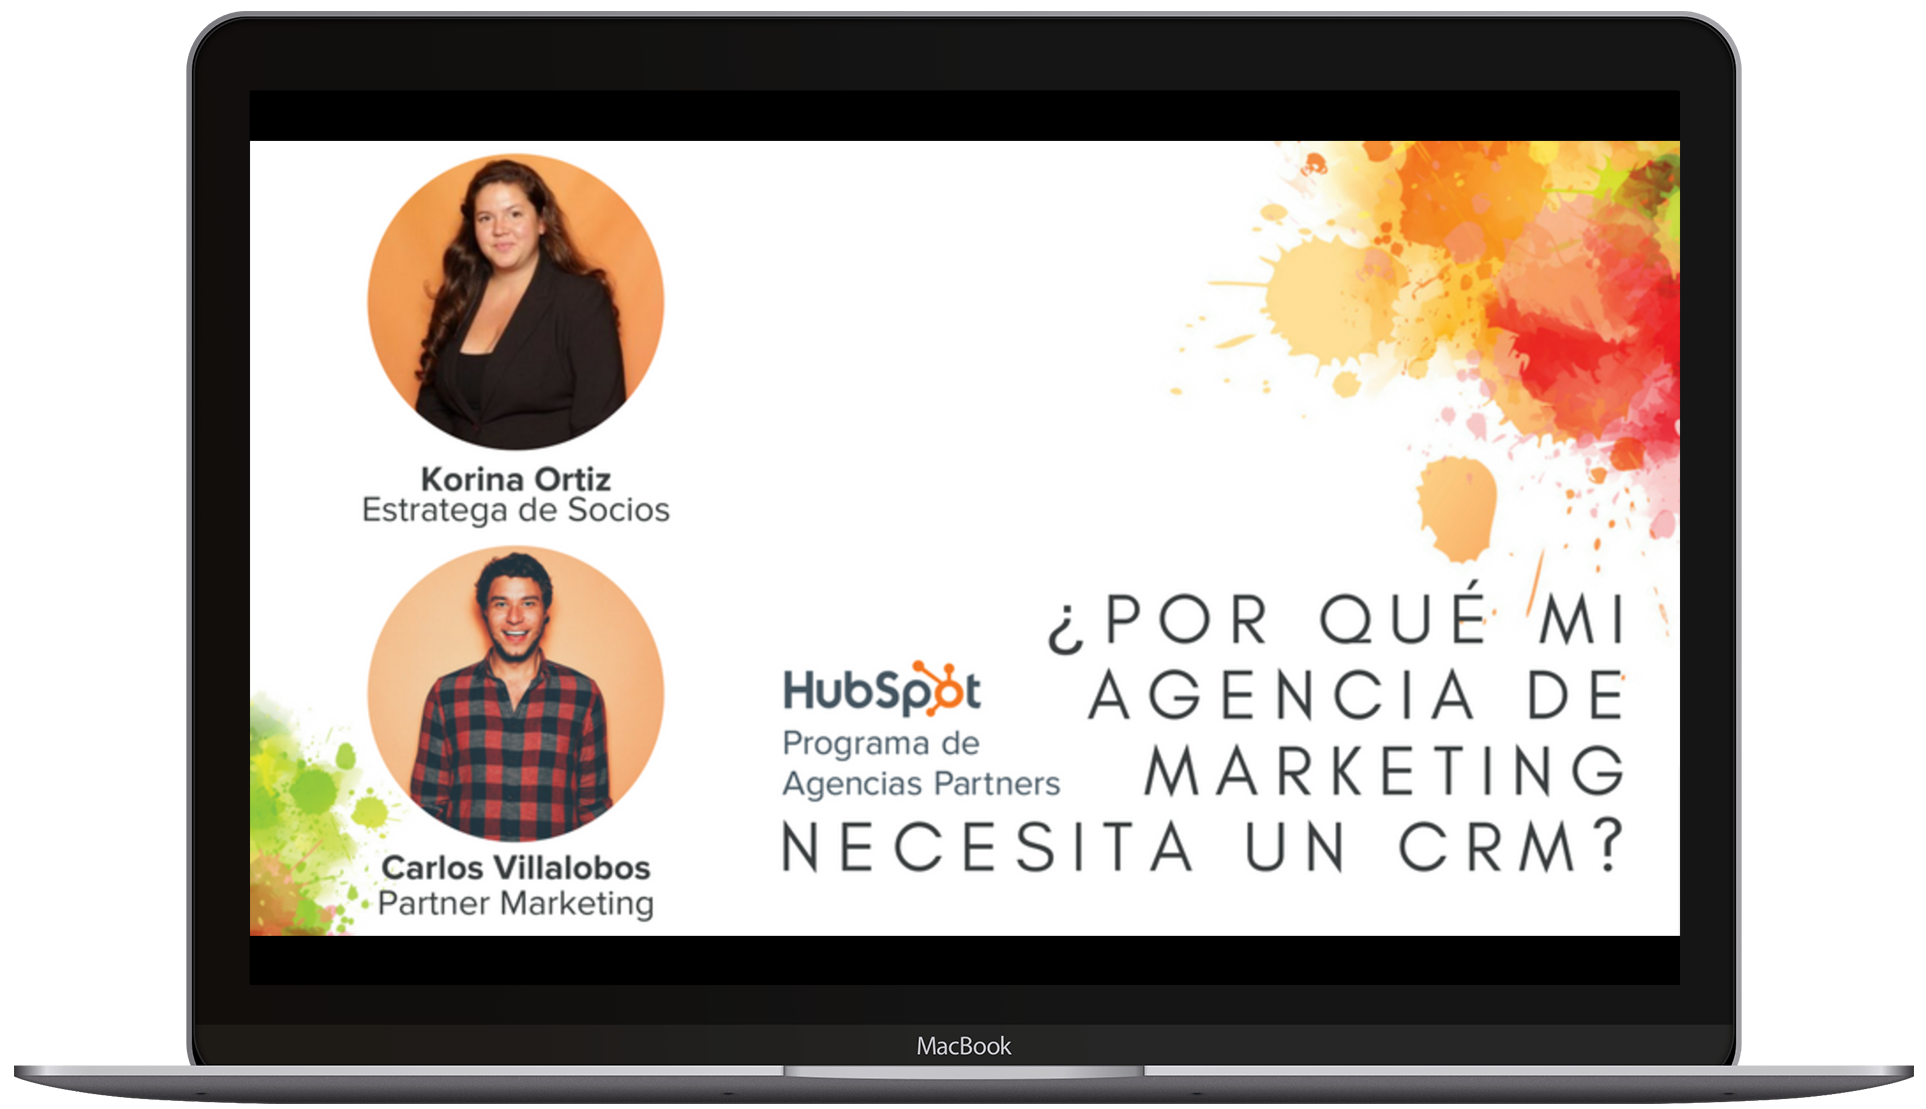 crm para mi agencia de marketing